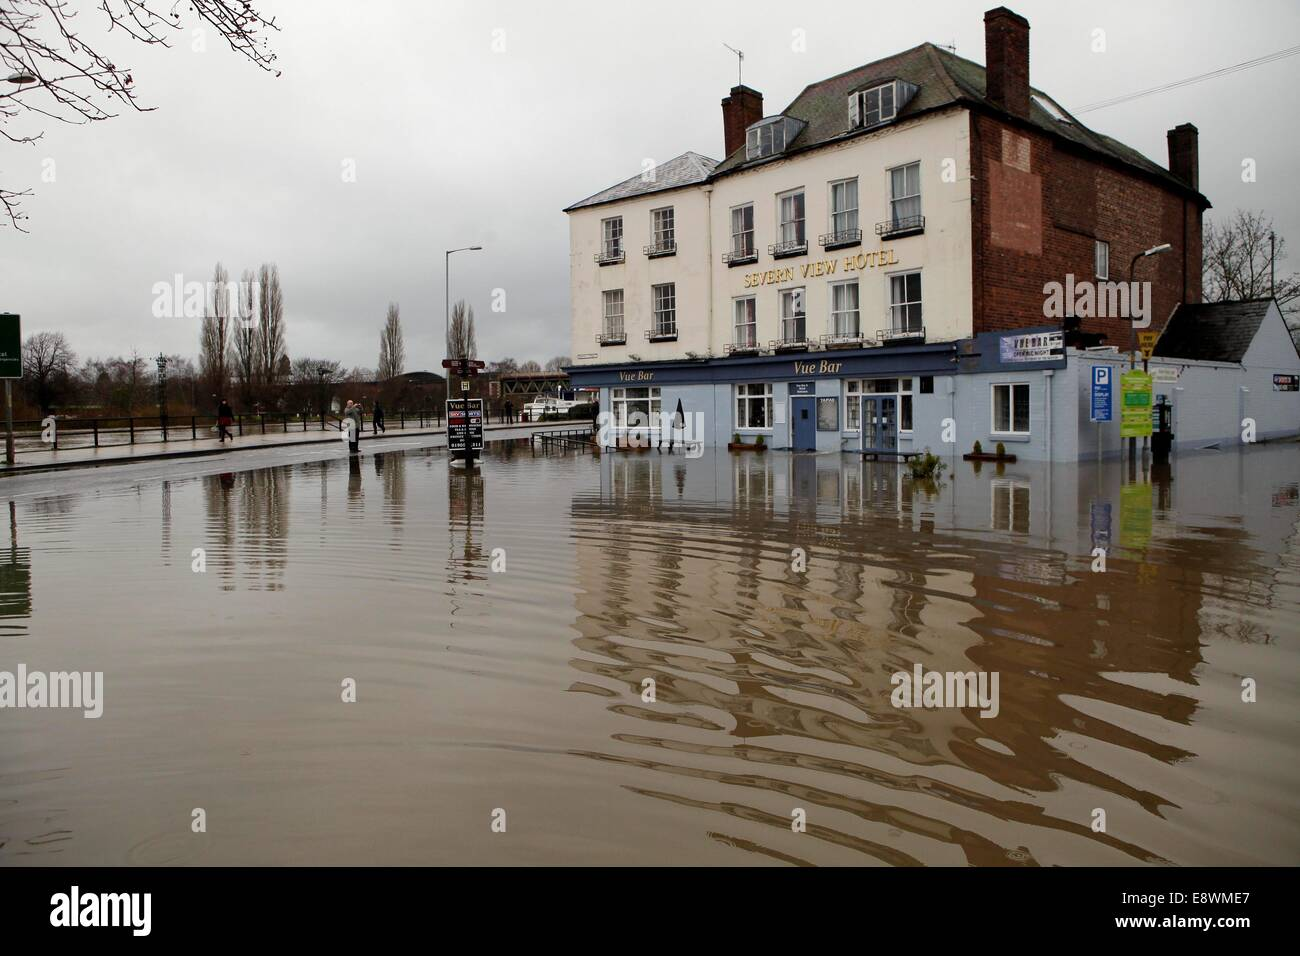 Flooding Worcester as the river severn bursts its banks. - Stock Image